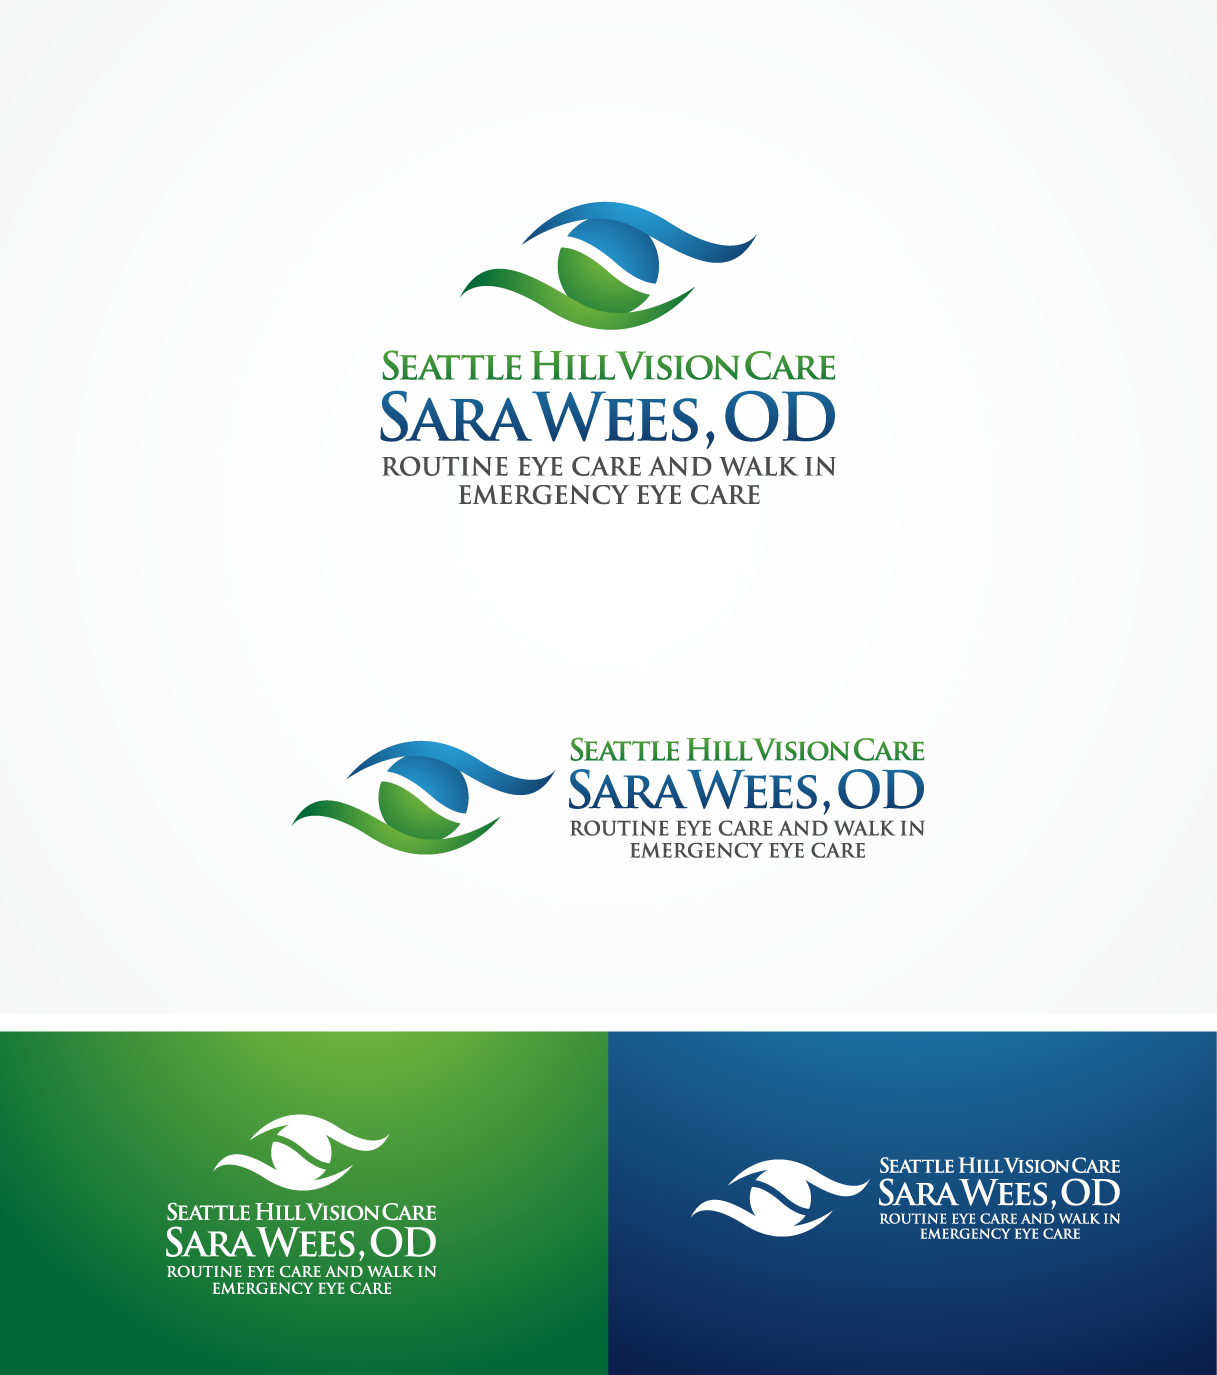 logo for Seattle Hill Vision Care